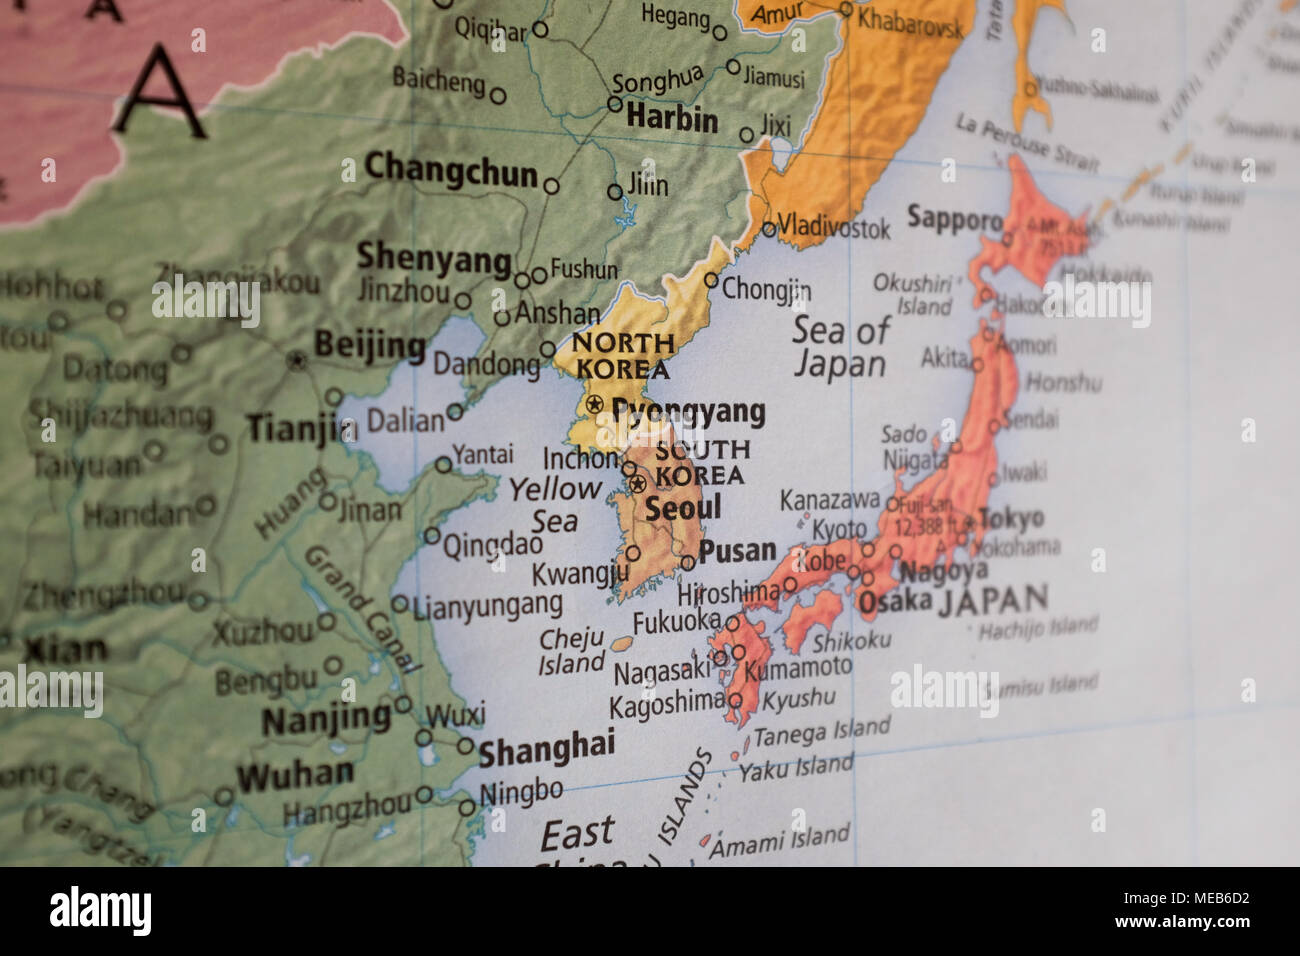 Map Of Asia Korean Peninsula.A Map Of East Asia With The Korean Peninsula In The Center Stock